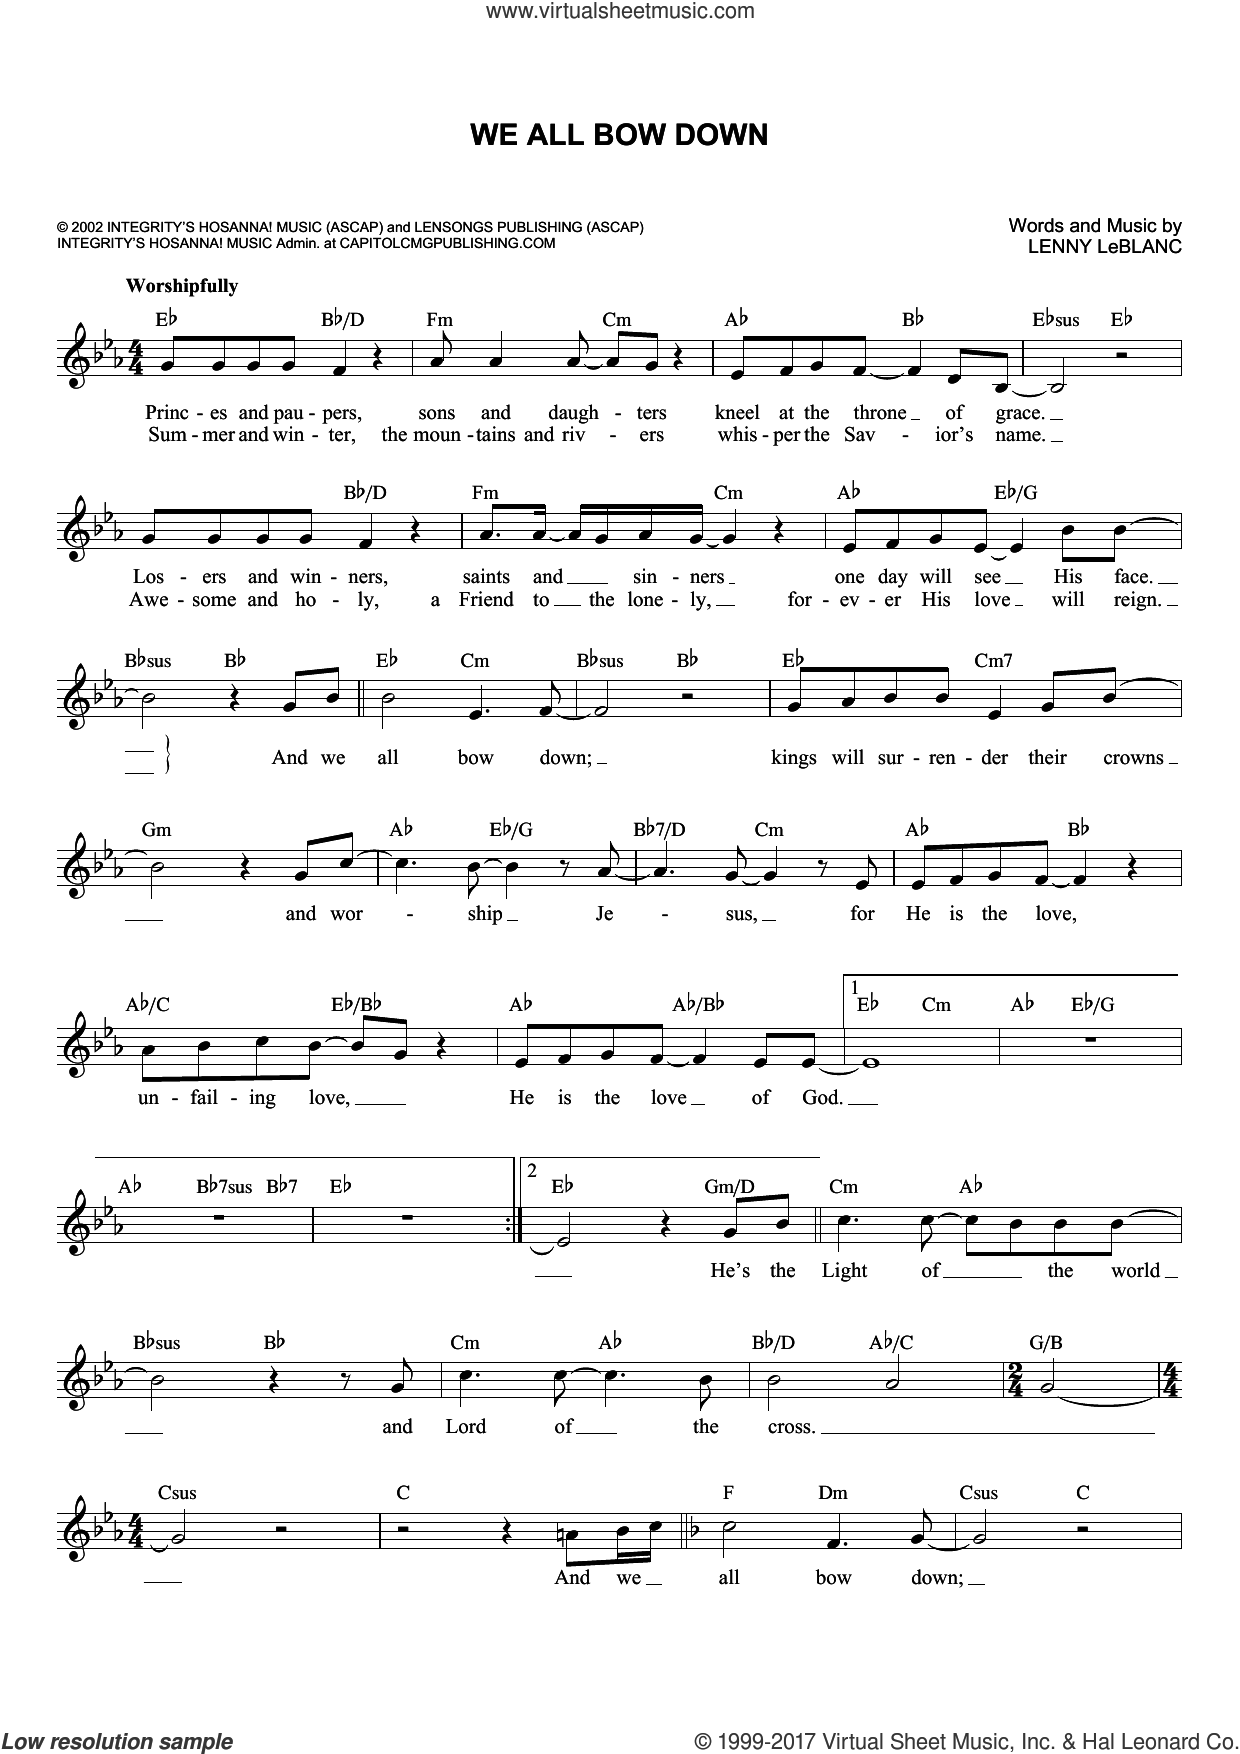 We All Bow Down sheet music for voice and other instruments (fake book) by Lenny LeBlanc, intermediate skill level